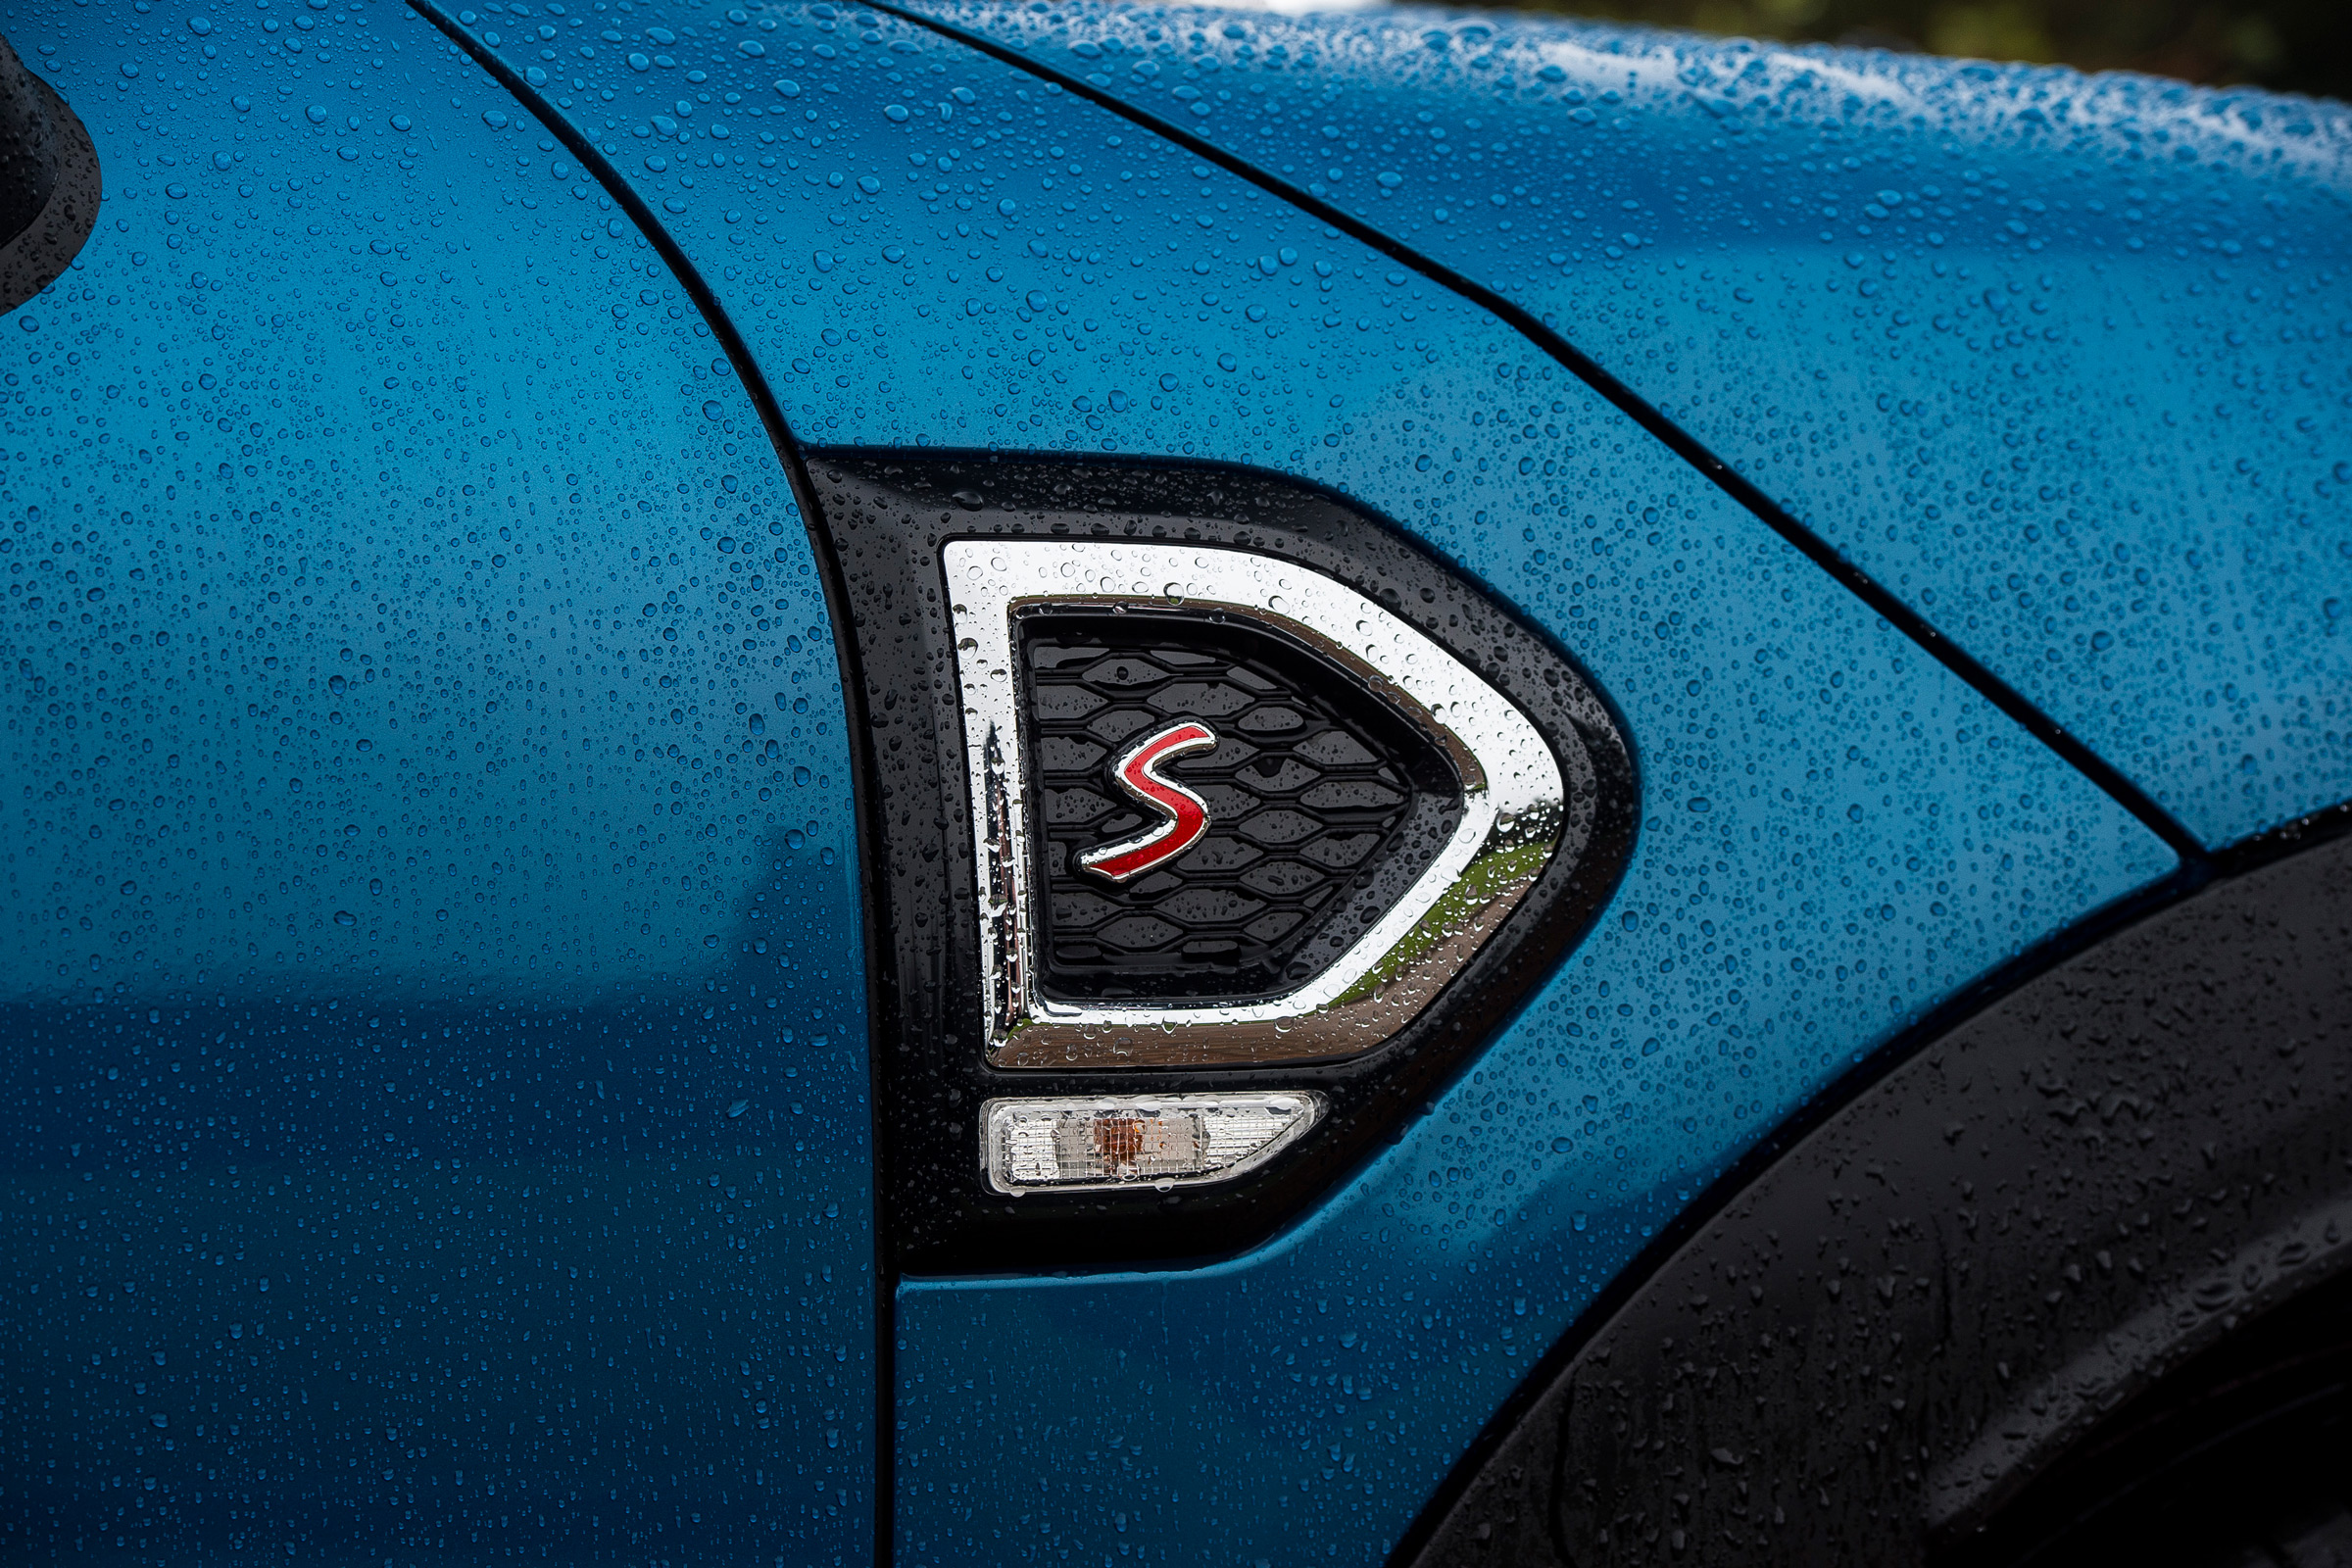 2017 MINI Countryman Exterior View Side Badge (Photo 52 of 61)